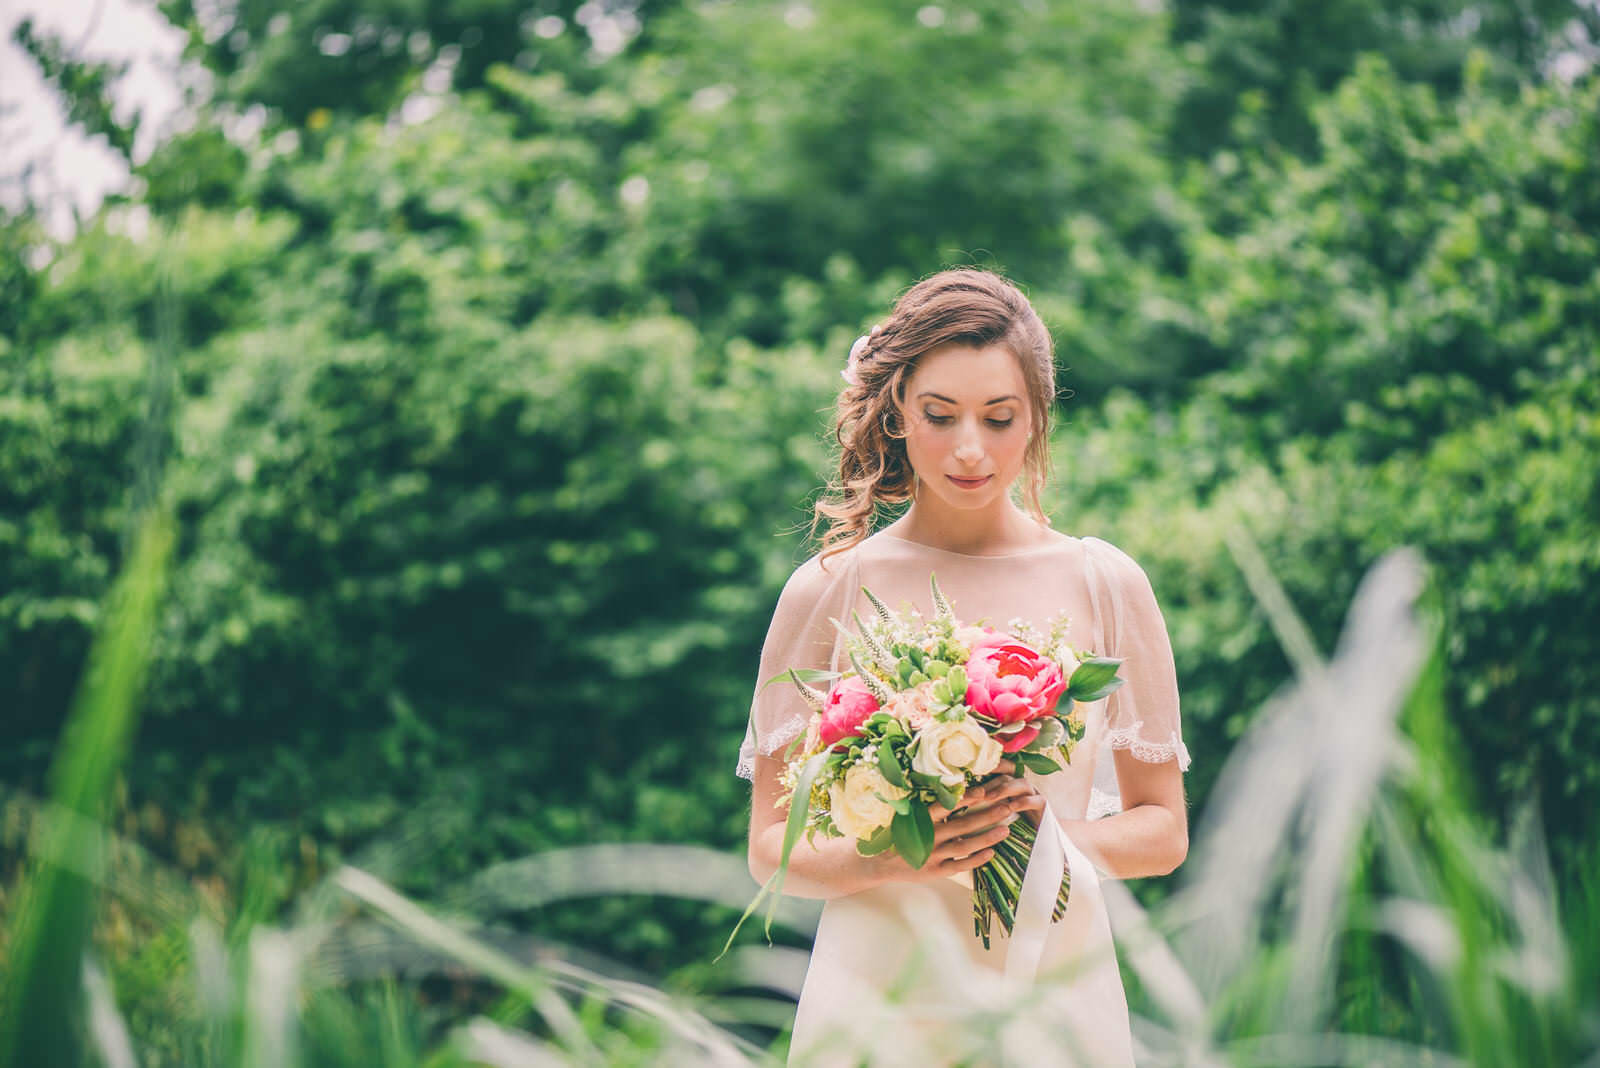 Dryhill Wedding Venue Cheltenham – Inspiration Shoot